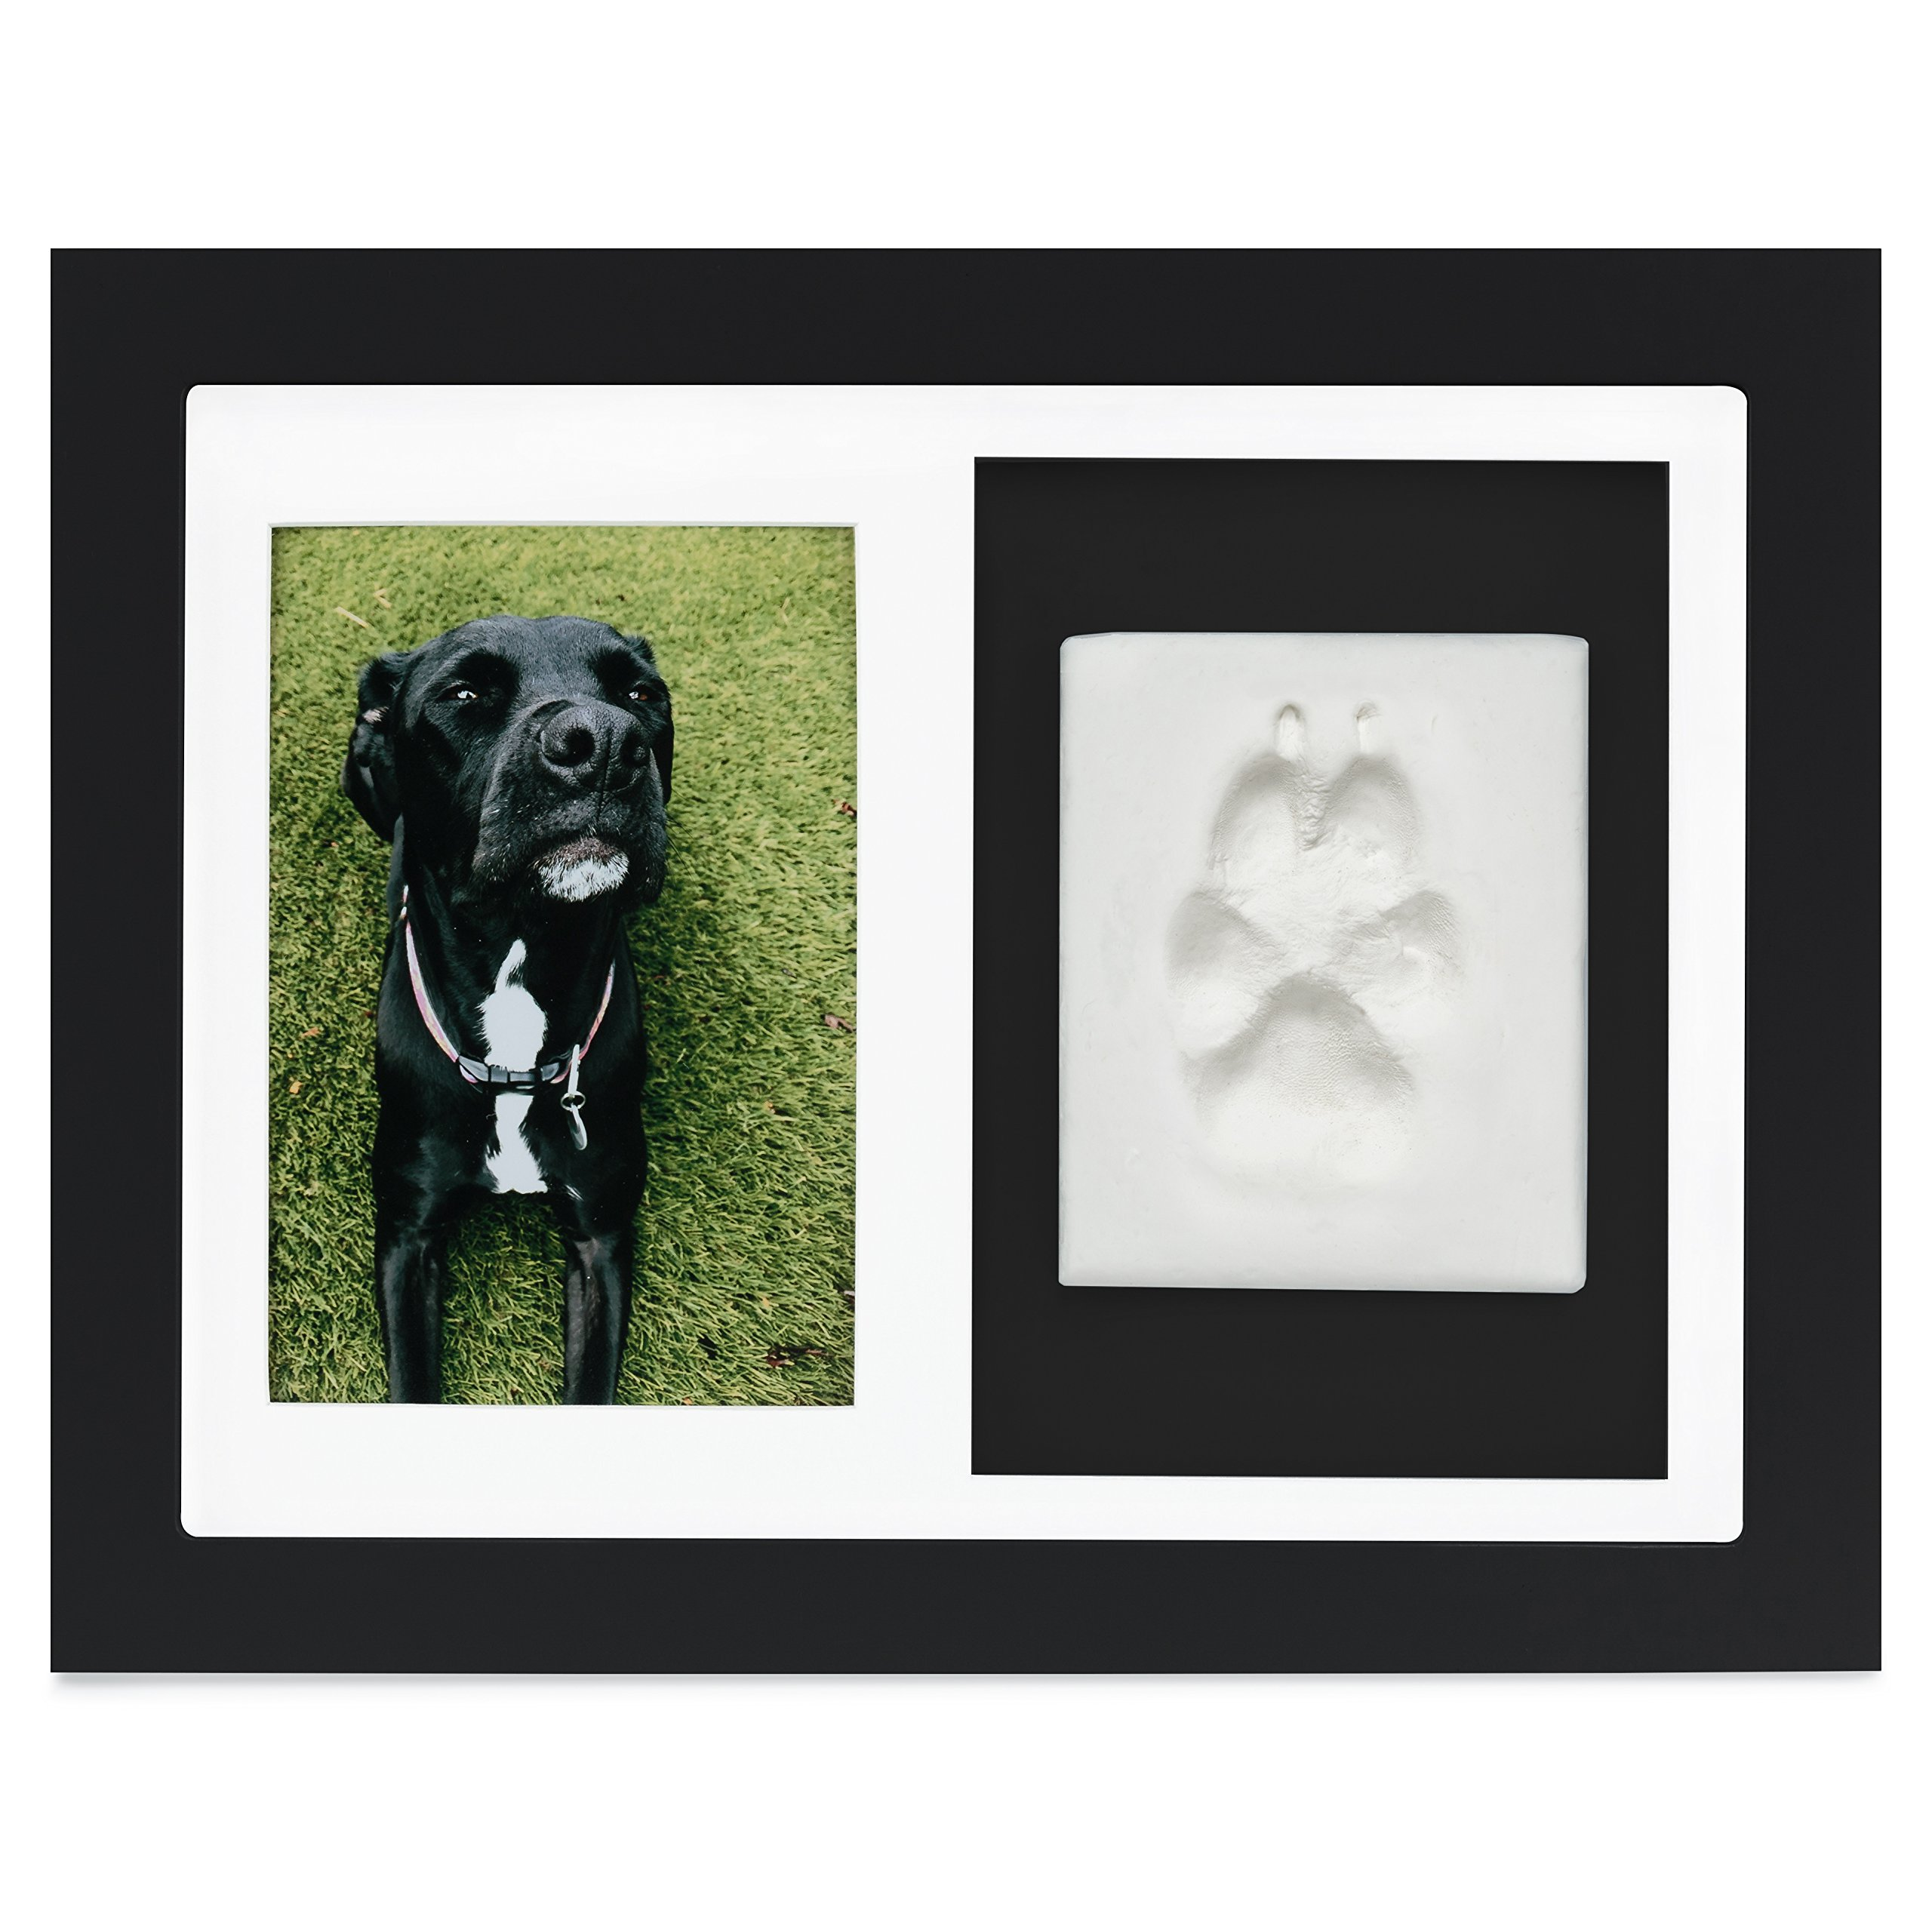 Better World Pets Paw Prints Keepsake Photo Frame Holds 4 x 6 inch Picture - Memorial Clay Imprint Kit - for Dogs and Cats - Perfect for Pet Lovers - Wall Mount by Better World Pets